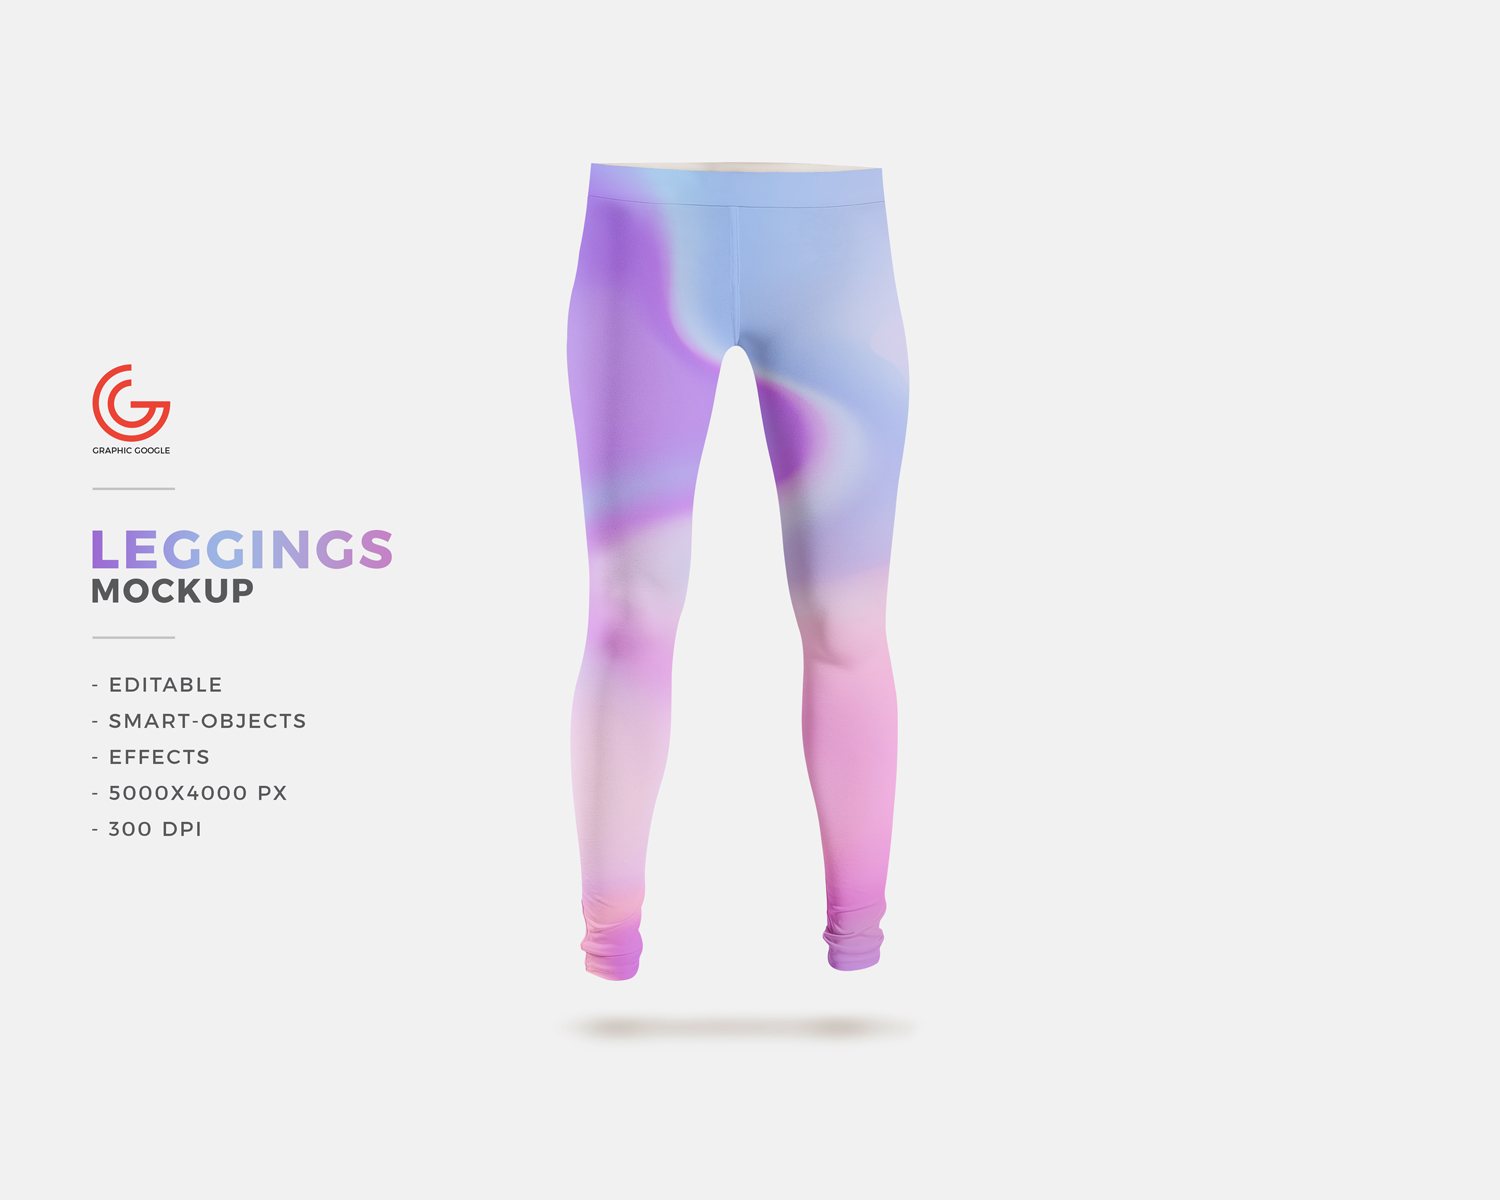 Free-Leggings-Mockup-PSD-2018-2